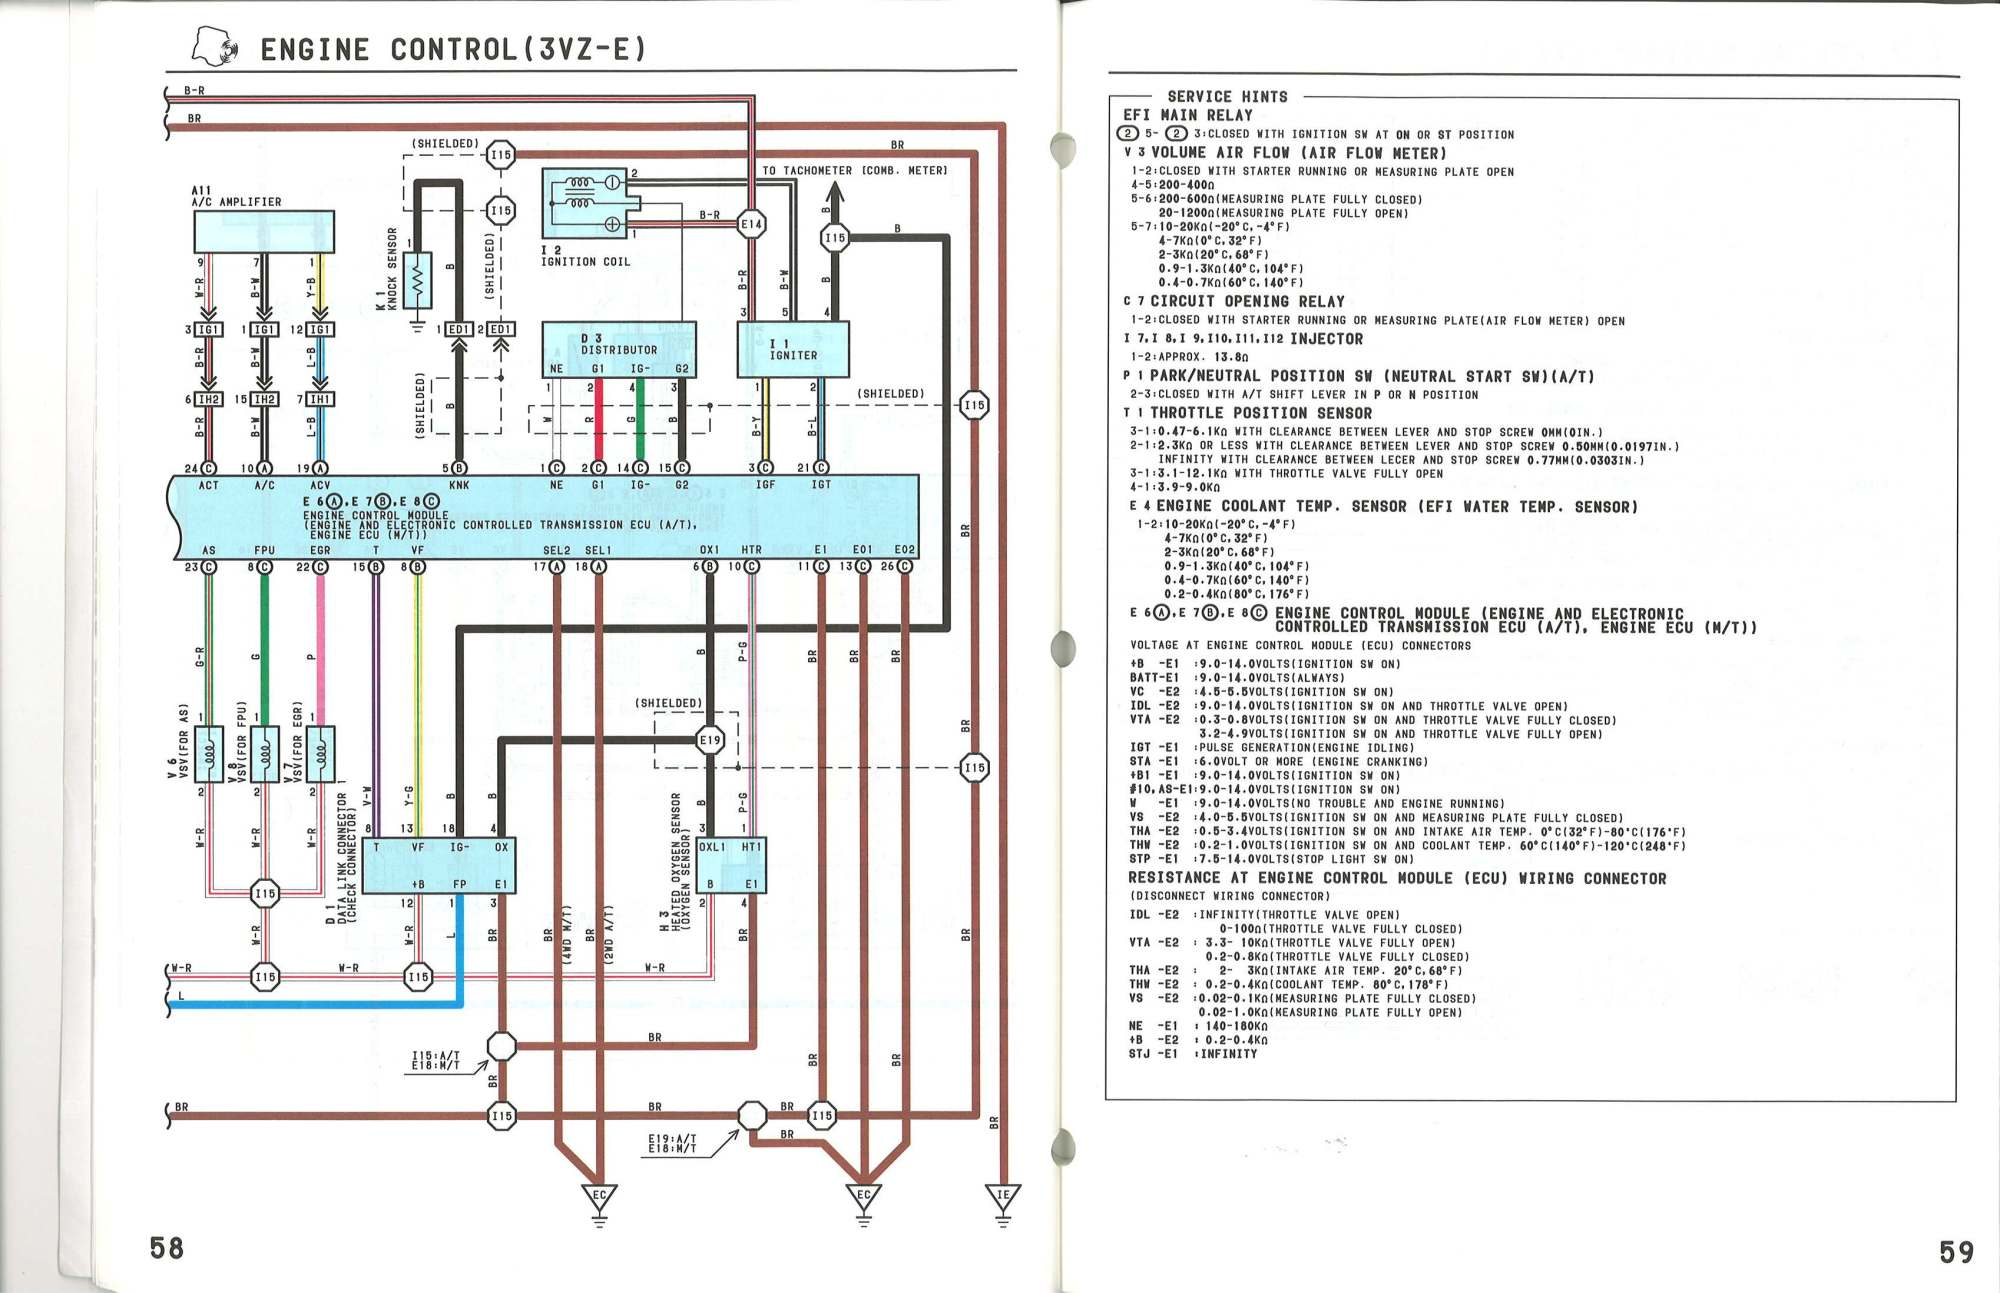 hight resolution of 1990 toyota pickup 3vze wiring diagram simple wiring schema 1jz gte wiring diagram  [ 2000 x 1293 Pixel ]